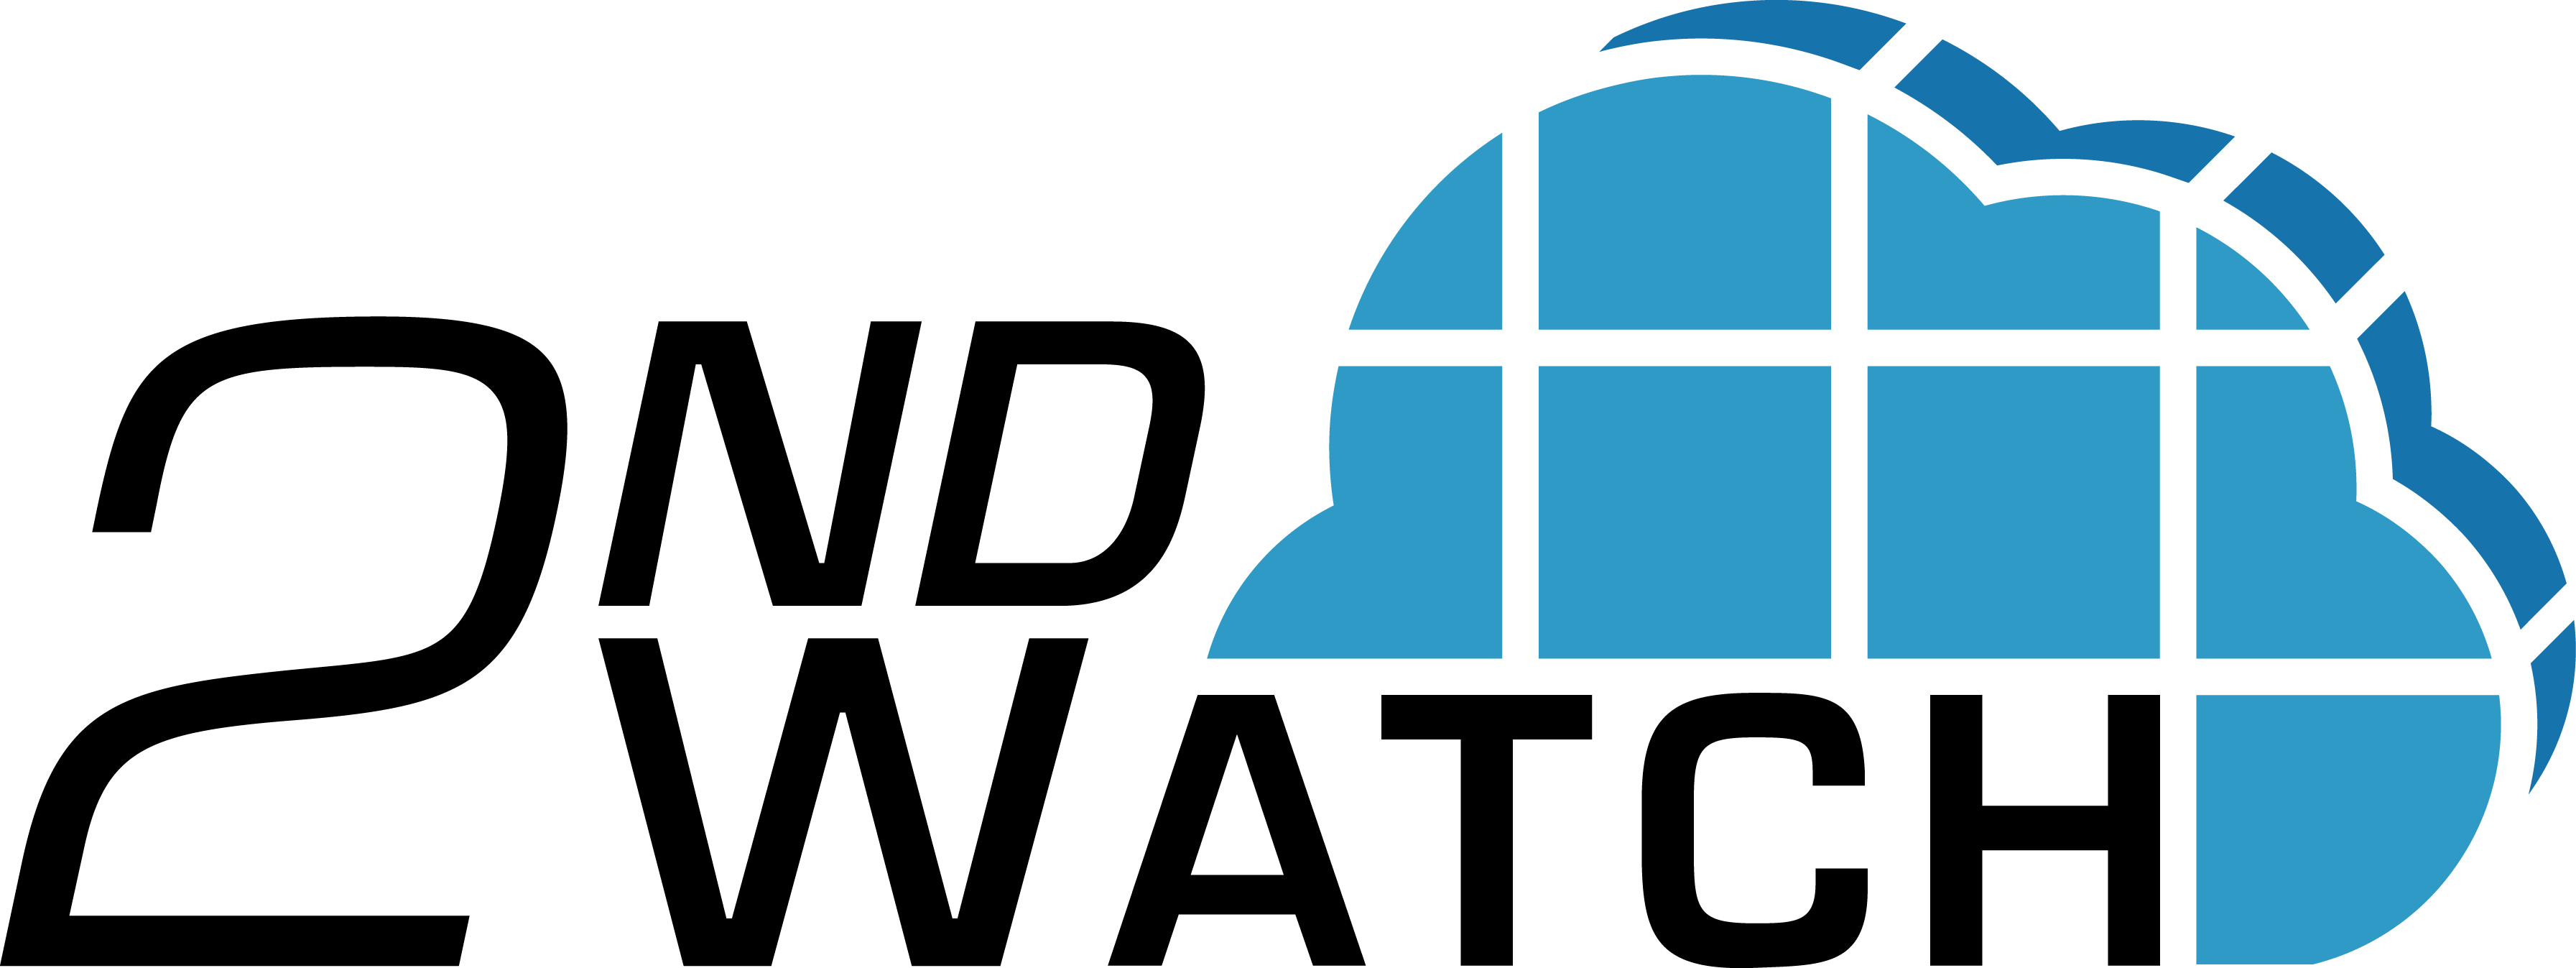 2nd Watch Logo.png.png